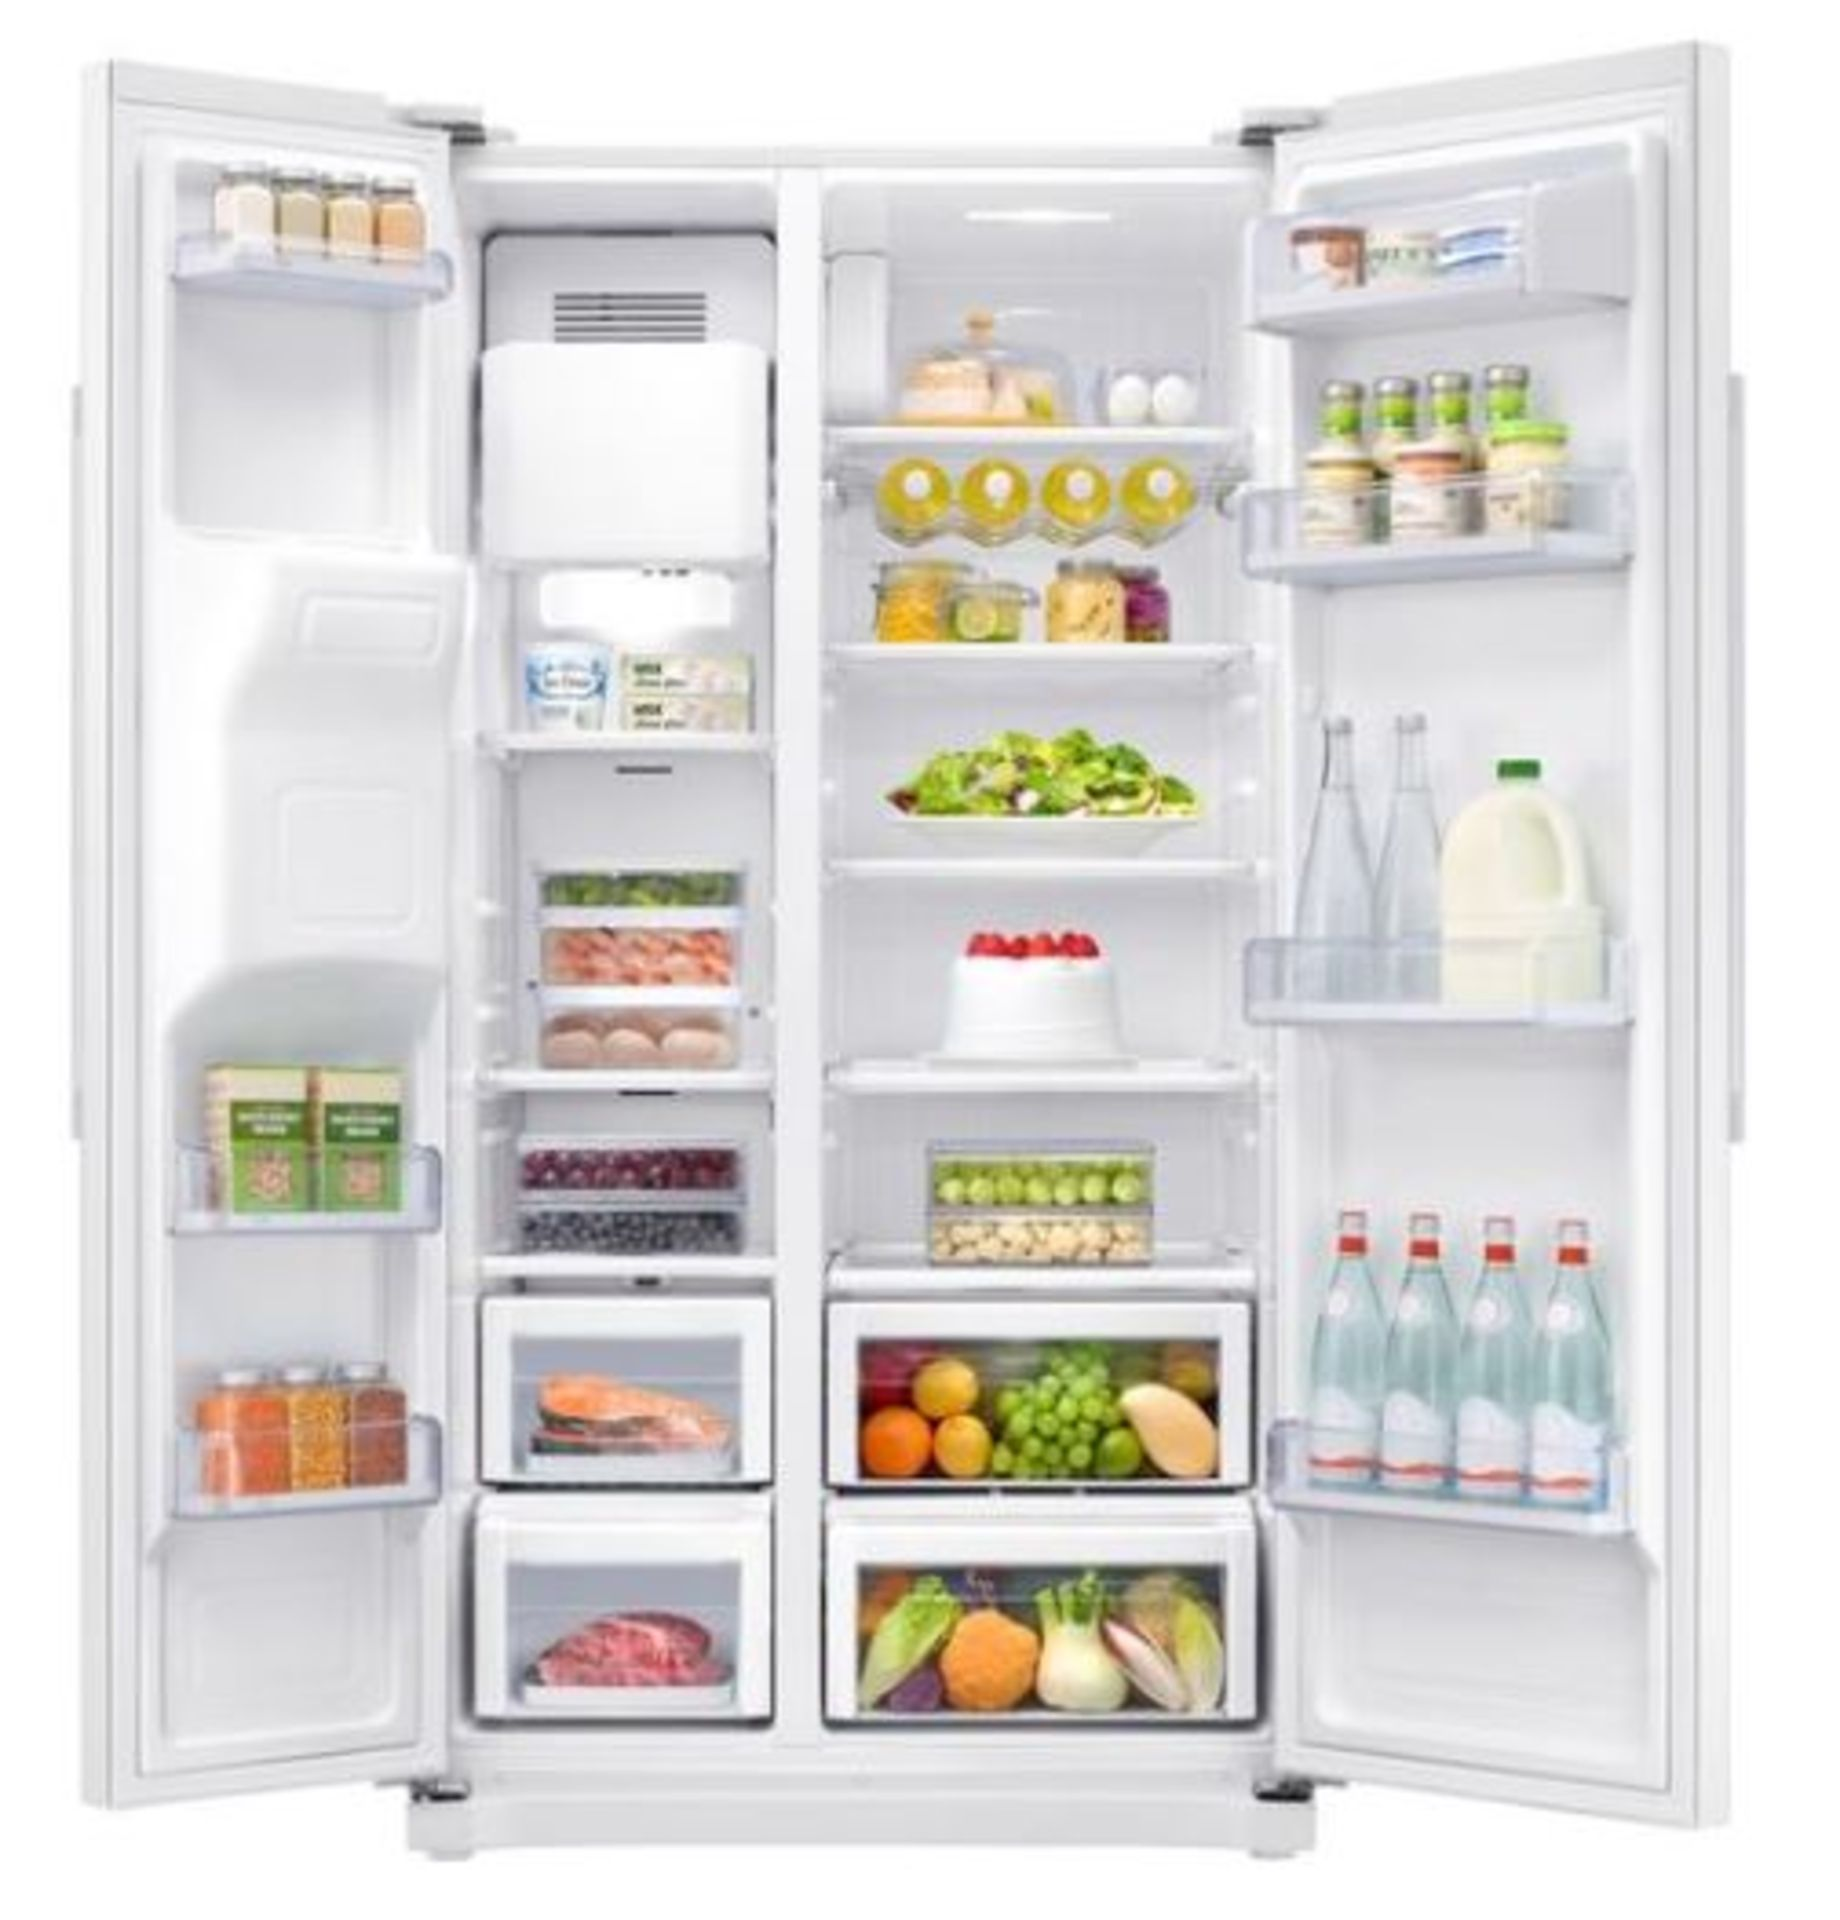 Pallet of 1 Samsung Water & Ice Fridge freezer. Latest selling price £999.99* - Image 2 of 8